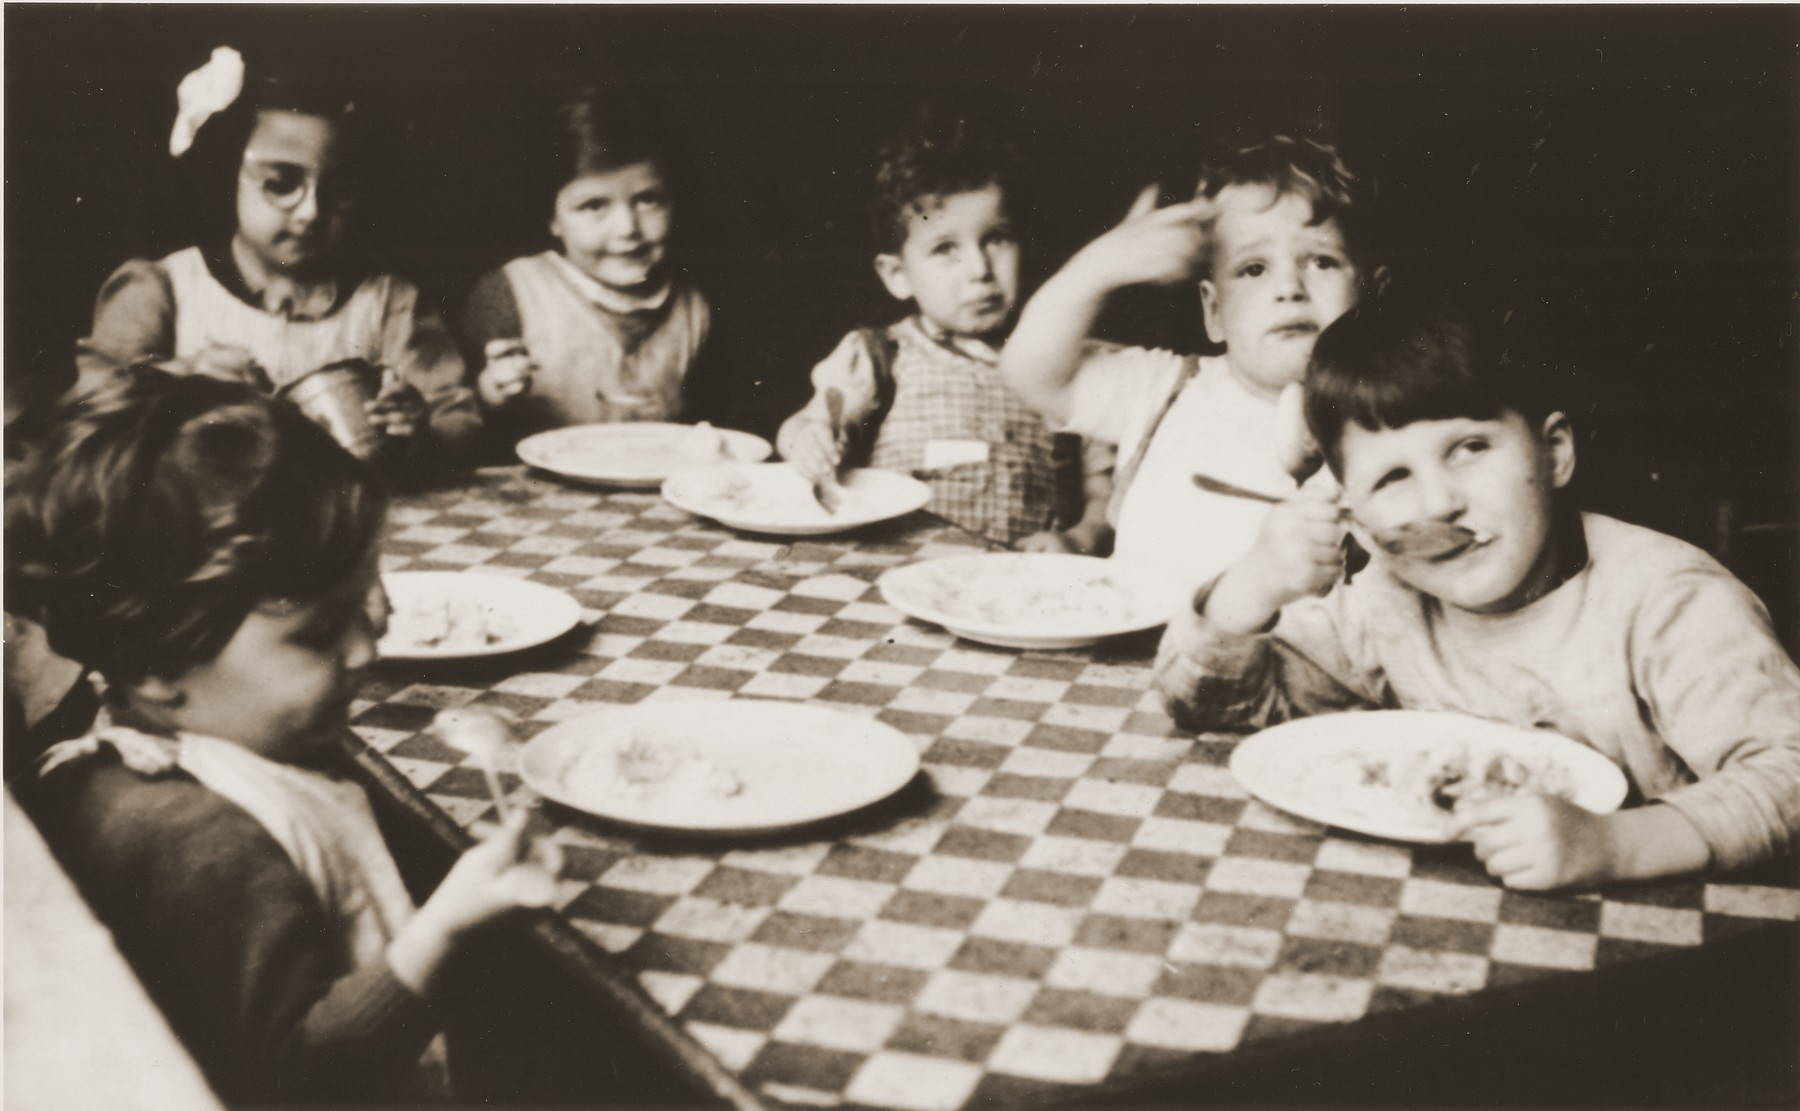 Toddlers at the La Pouponniere children's home in Belgium are seated around a table eating.